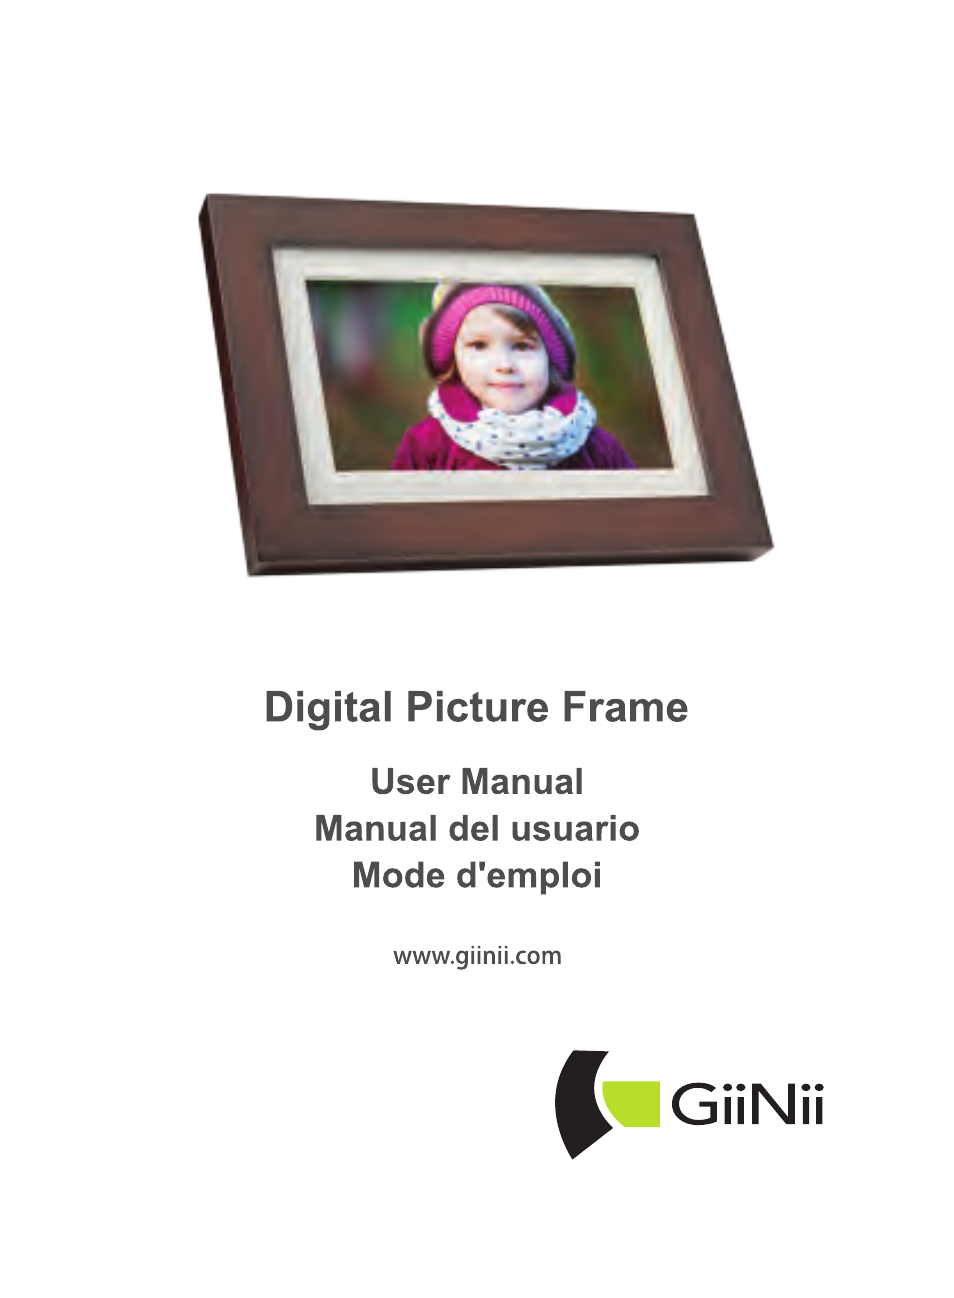 GiiNii GH-701P User Manual | 124 pages | Also for: GH-811P, GH-A12P ...